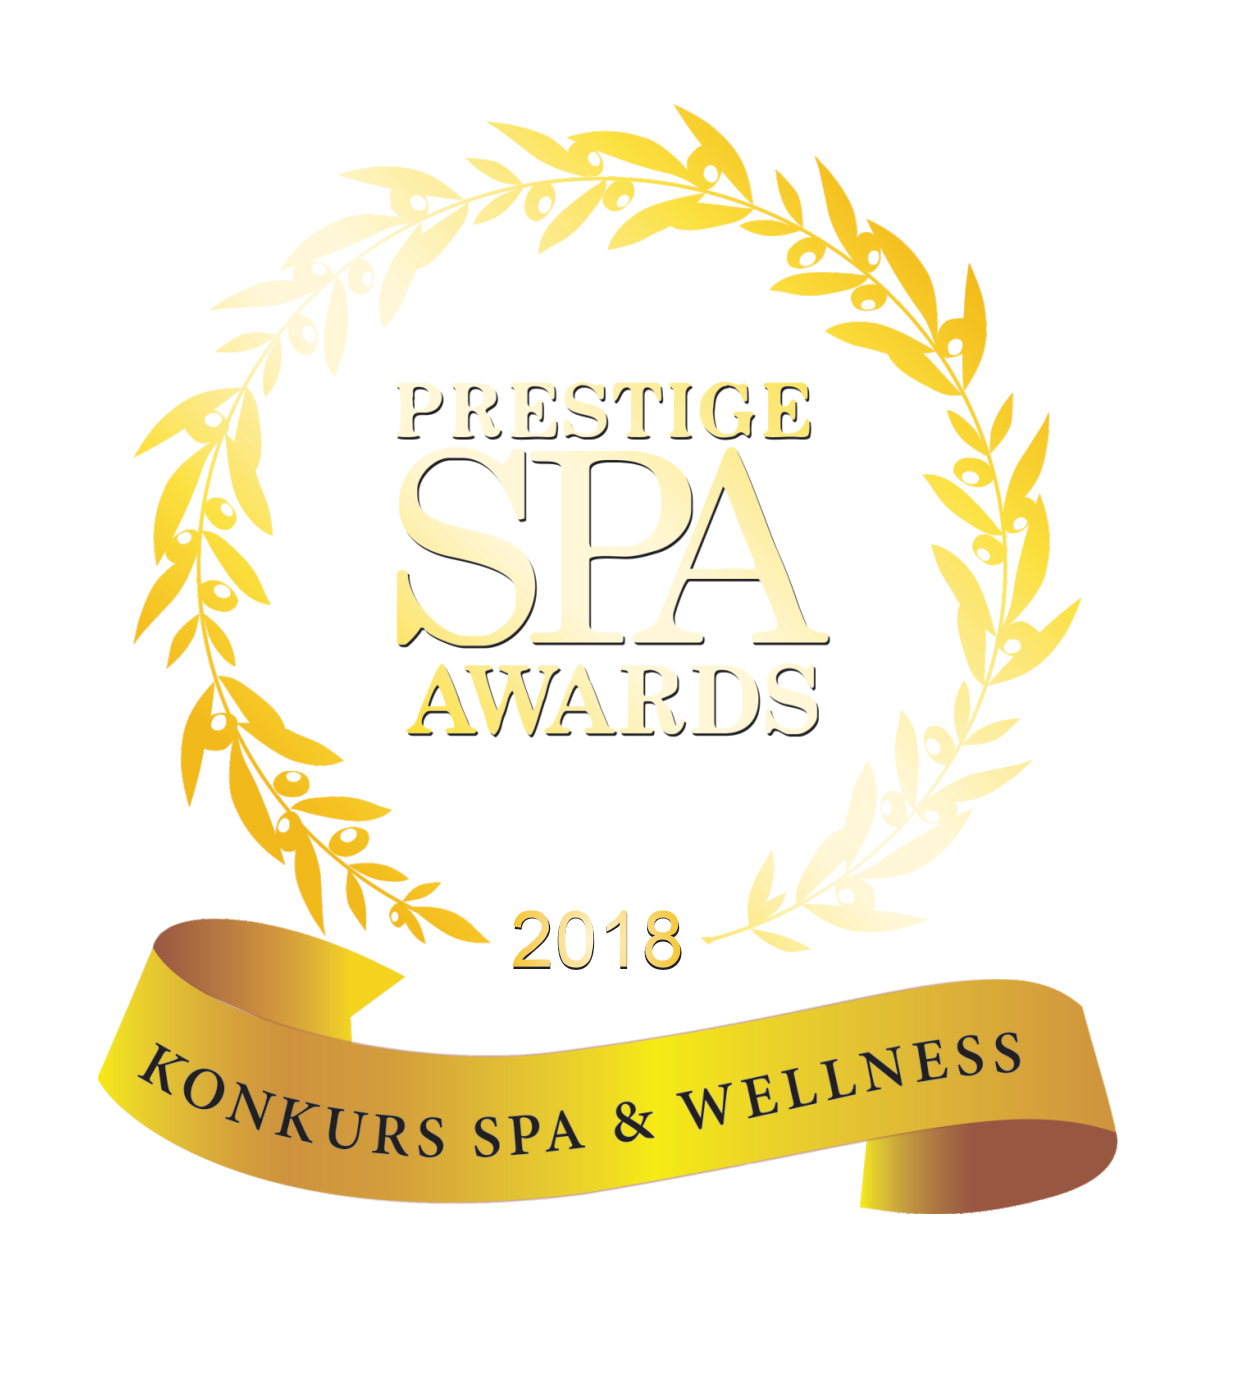 Spa Prestige Awards 2018 - The Best Butique SPA